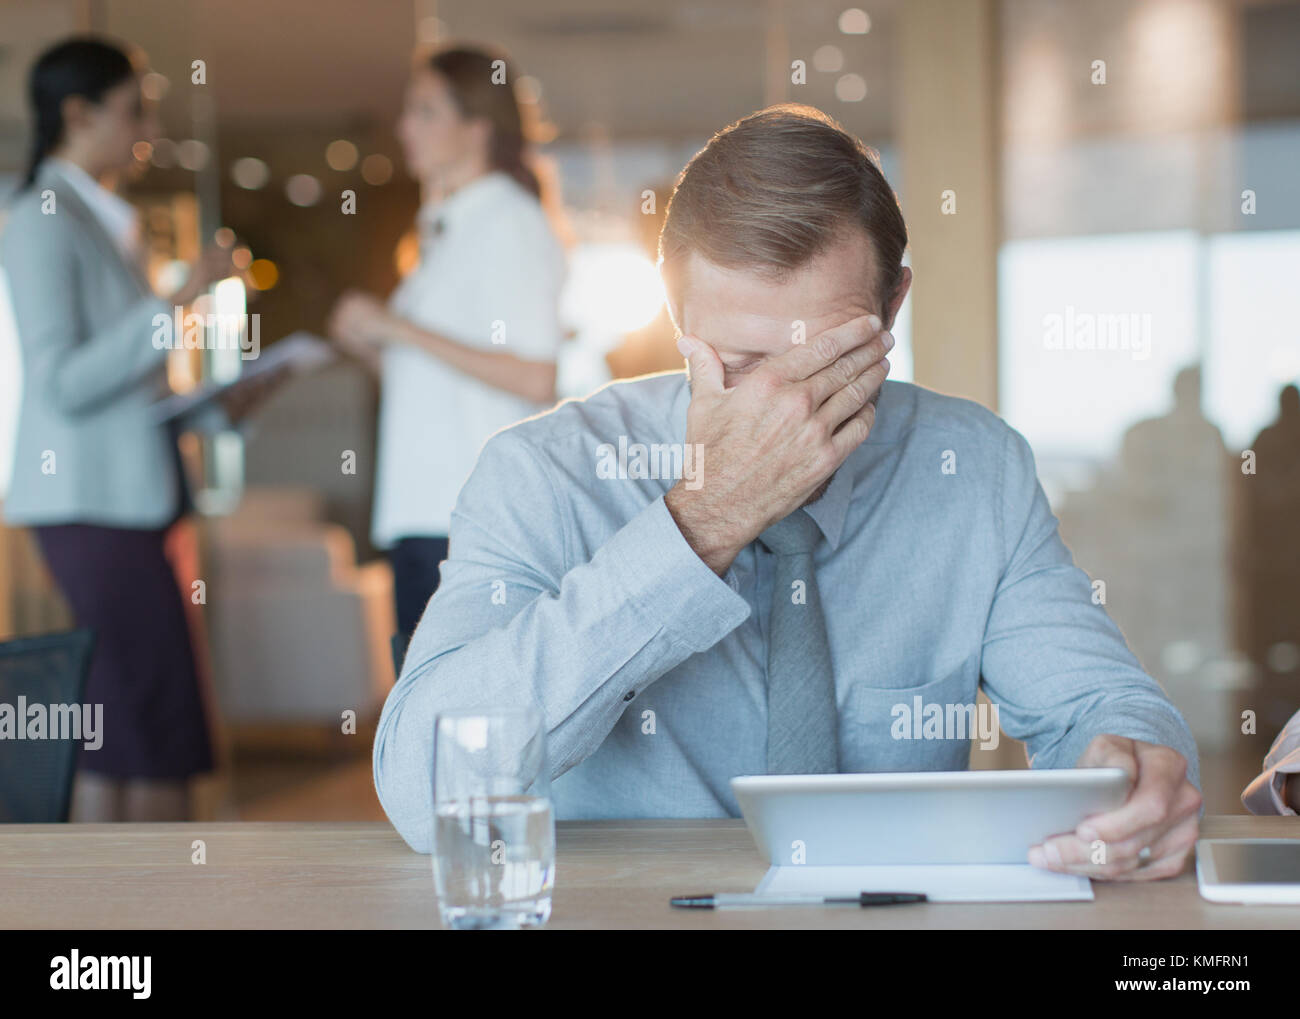 Tired, stressed businessman using digital tablet in conference room - Stock Image